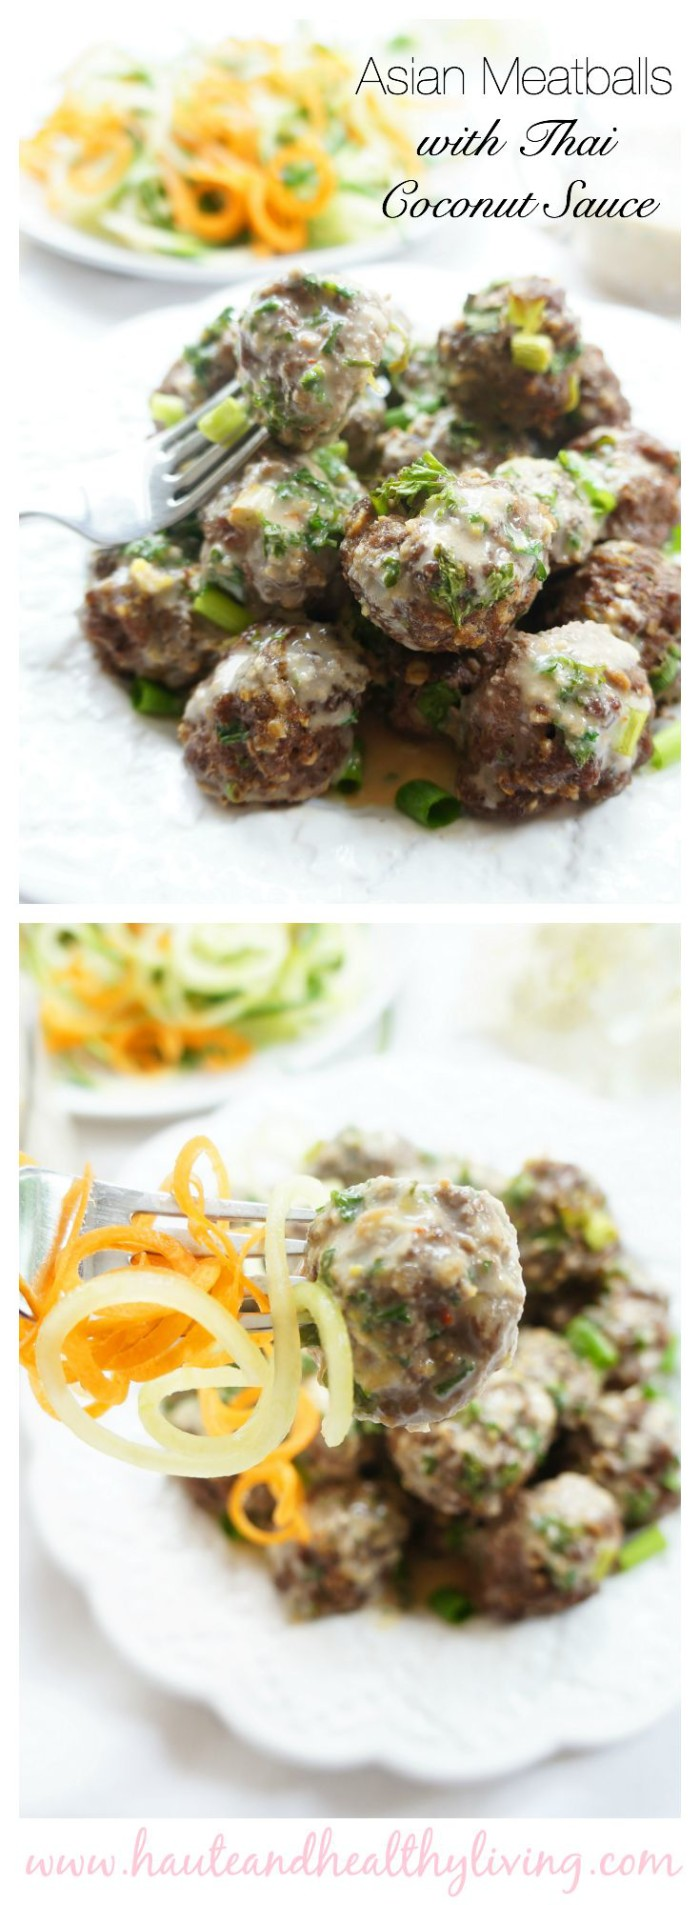 Asian Beef Meatballs with Thai Coconut Sauce | Haute & Healthy Living